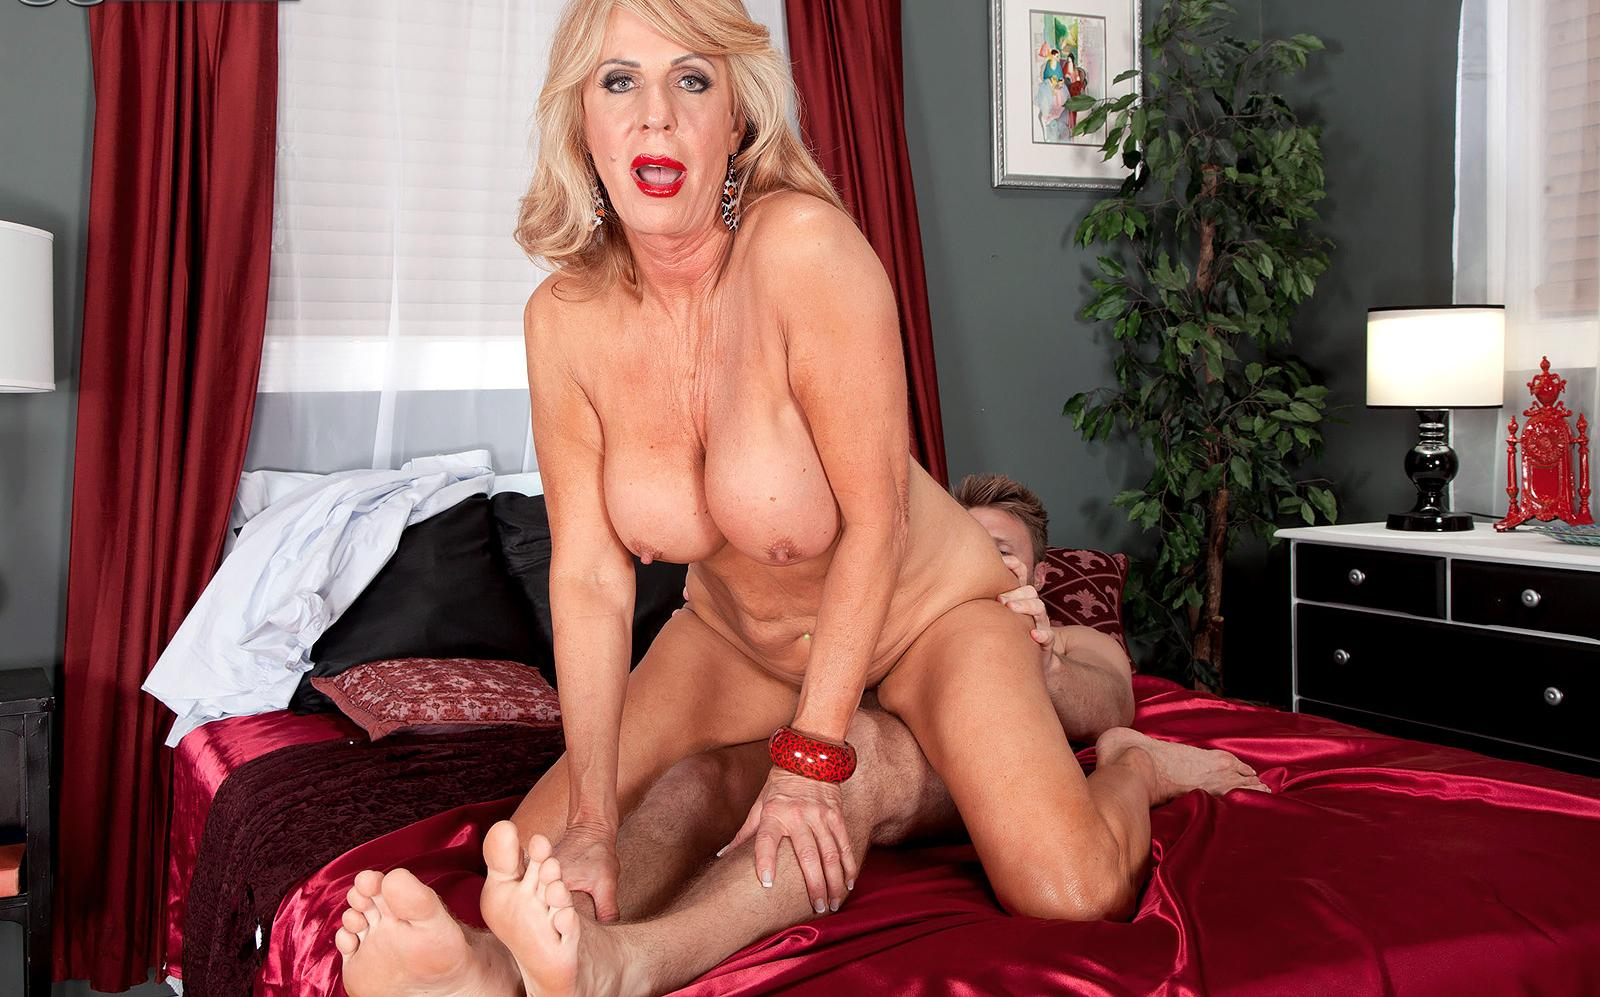 Kassandra a horny granny loves to facesit on young studs with her huge old vagina